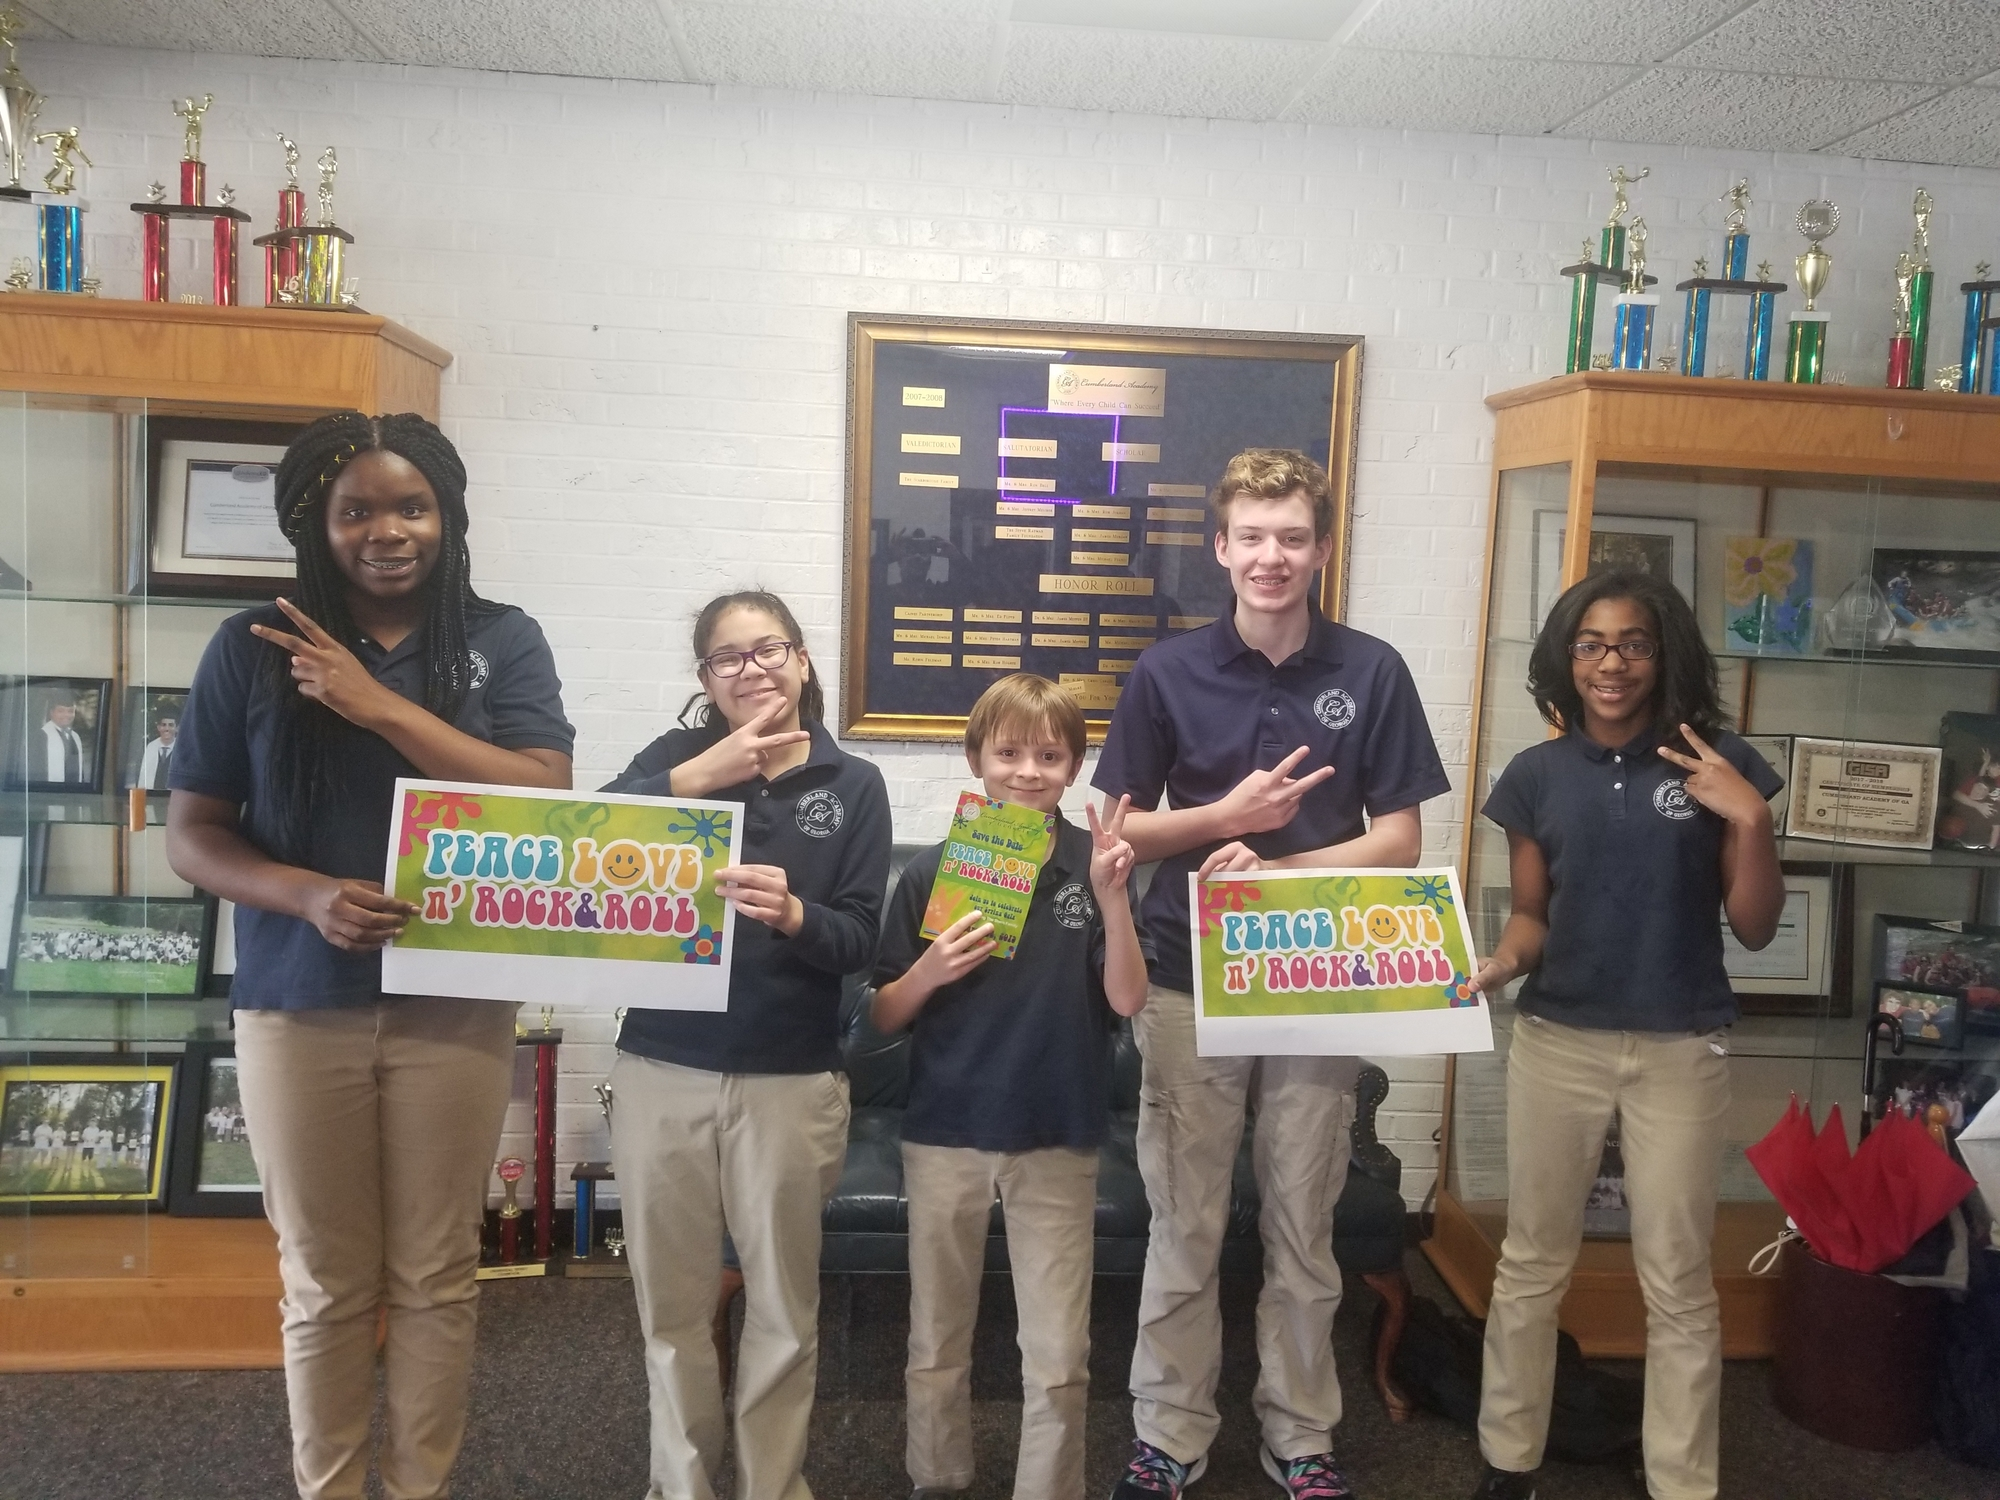 Cumberland Academy of Georgia students excited for annual spring gala